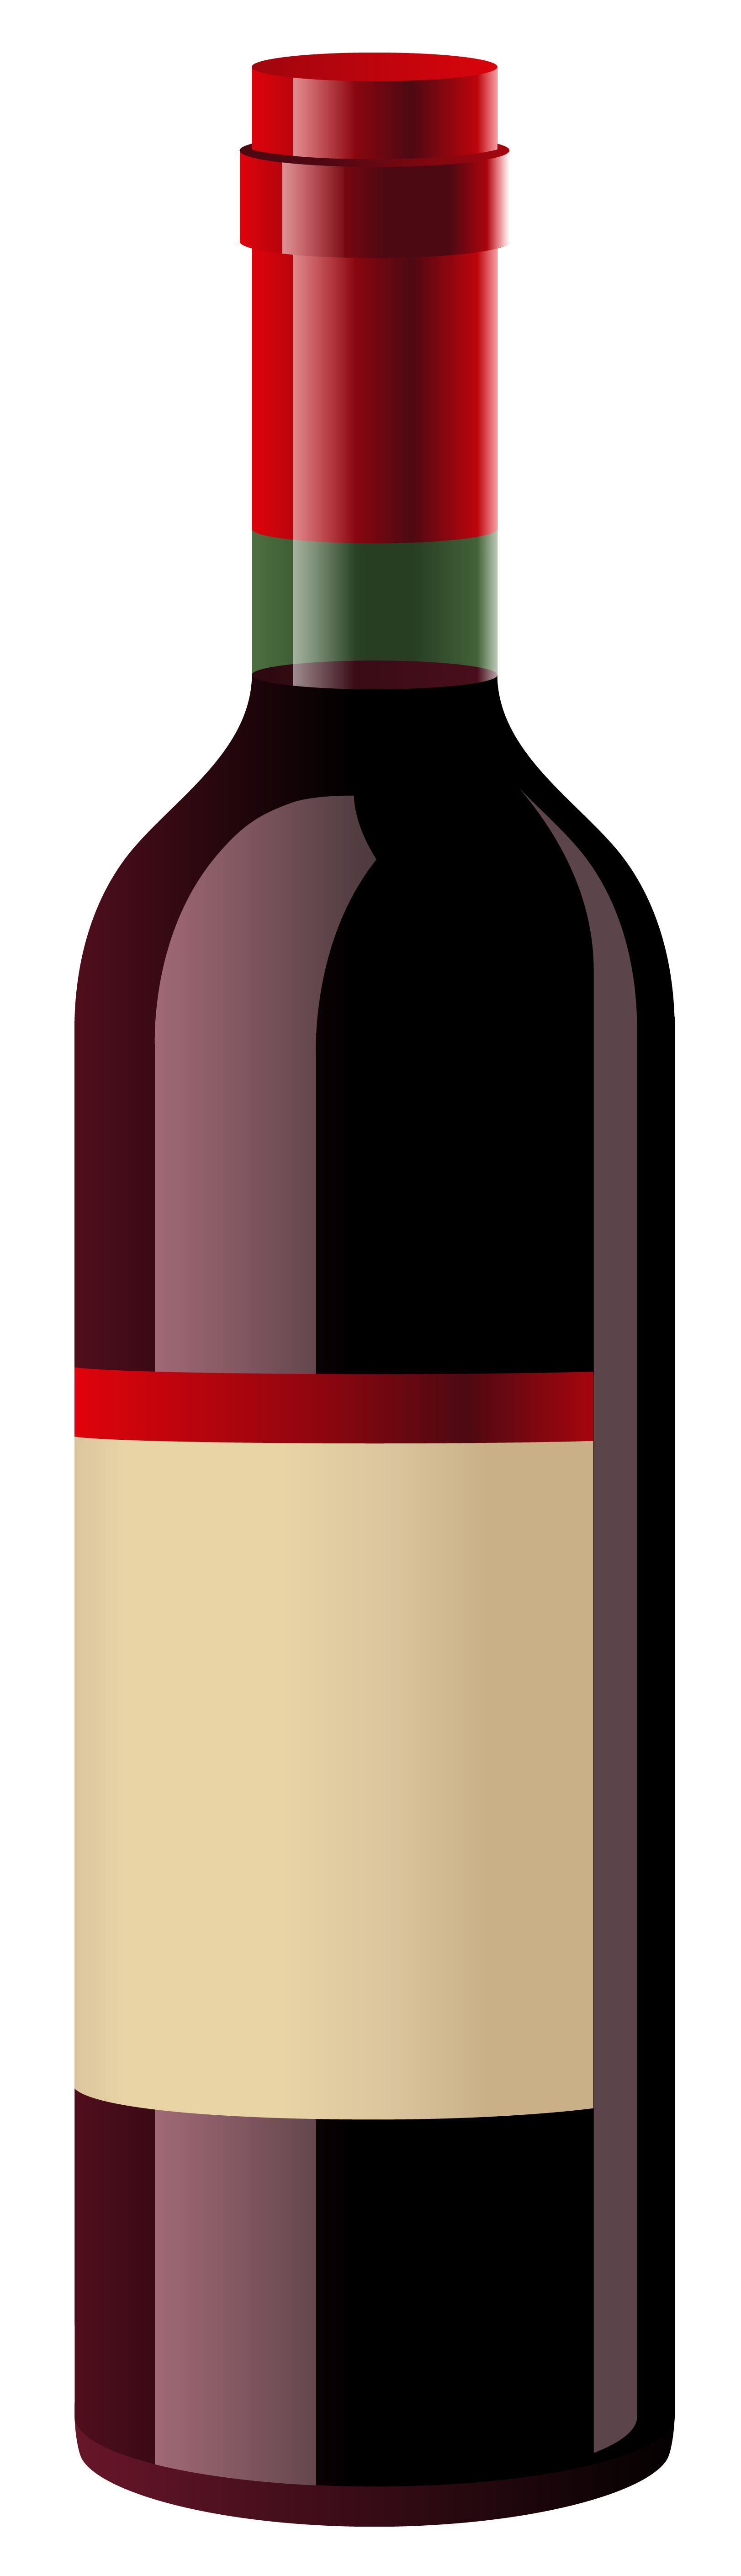 Wine bottle png. Red clipart best web